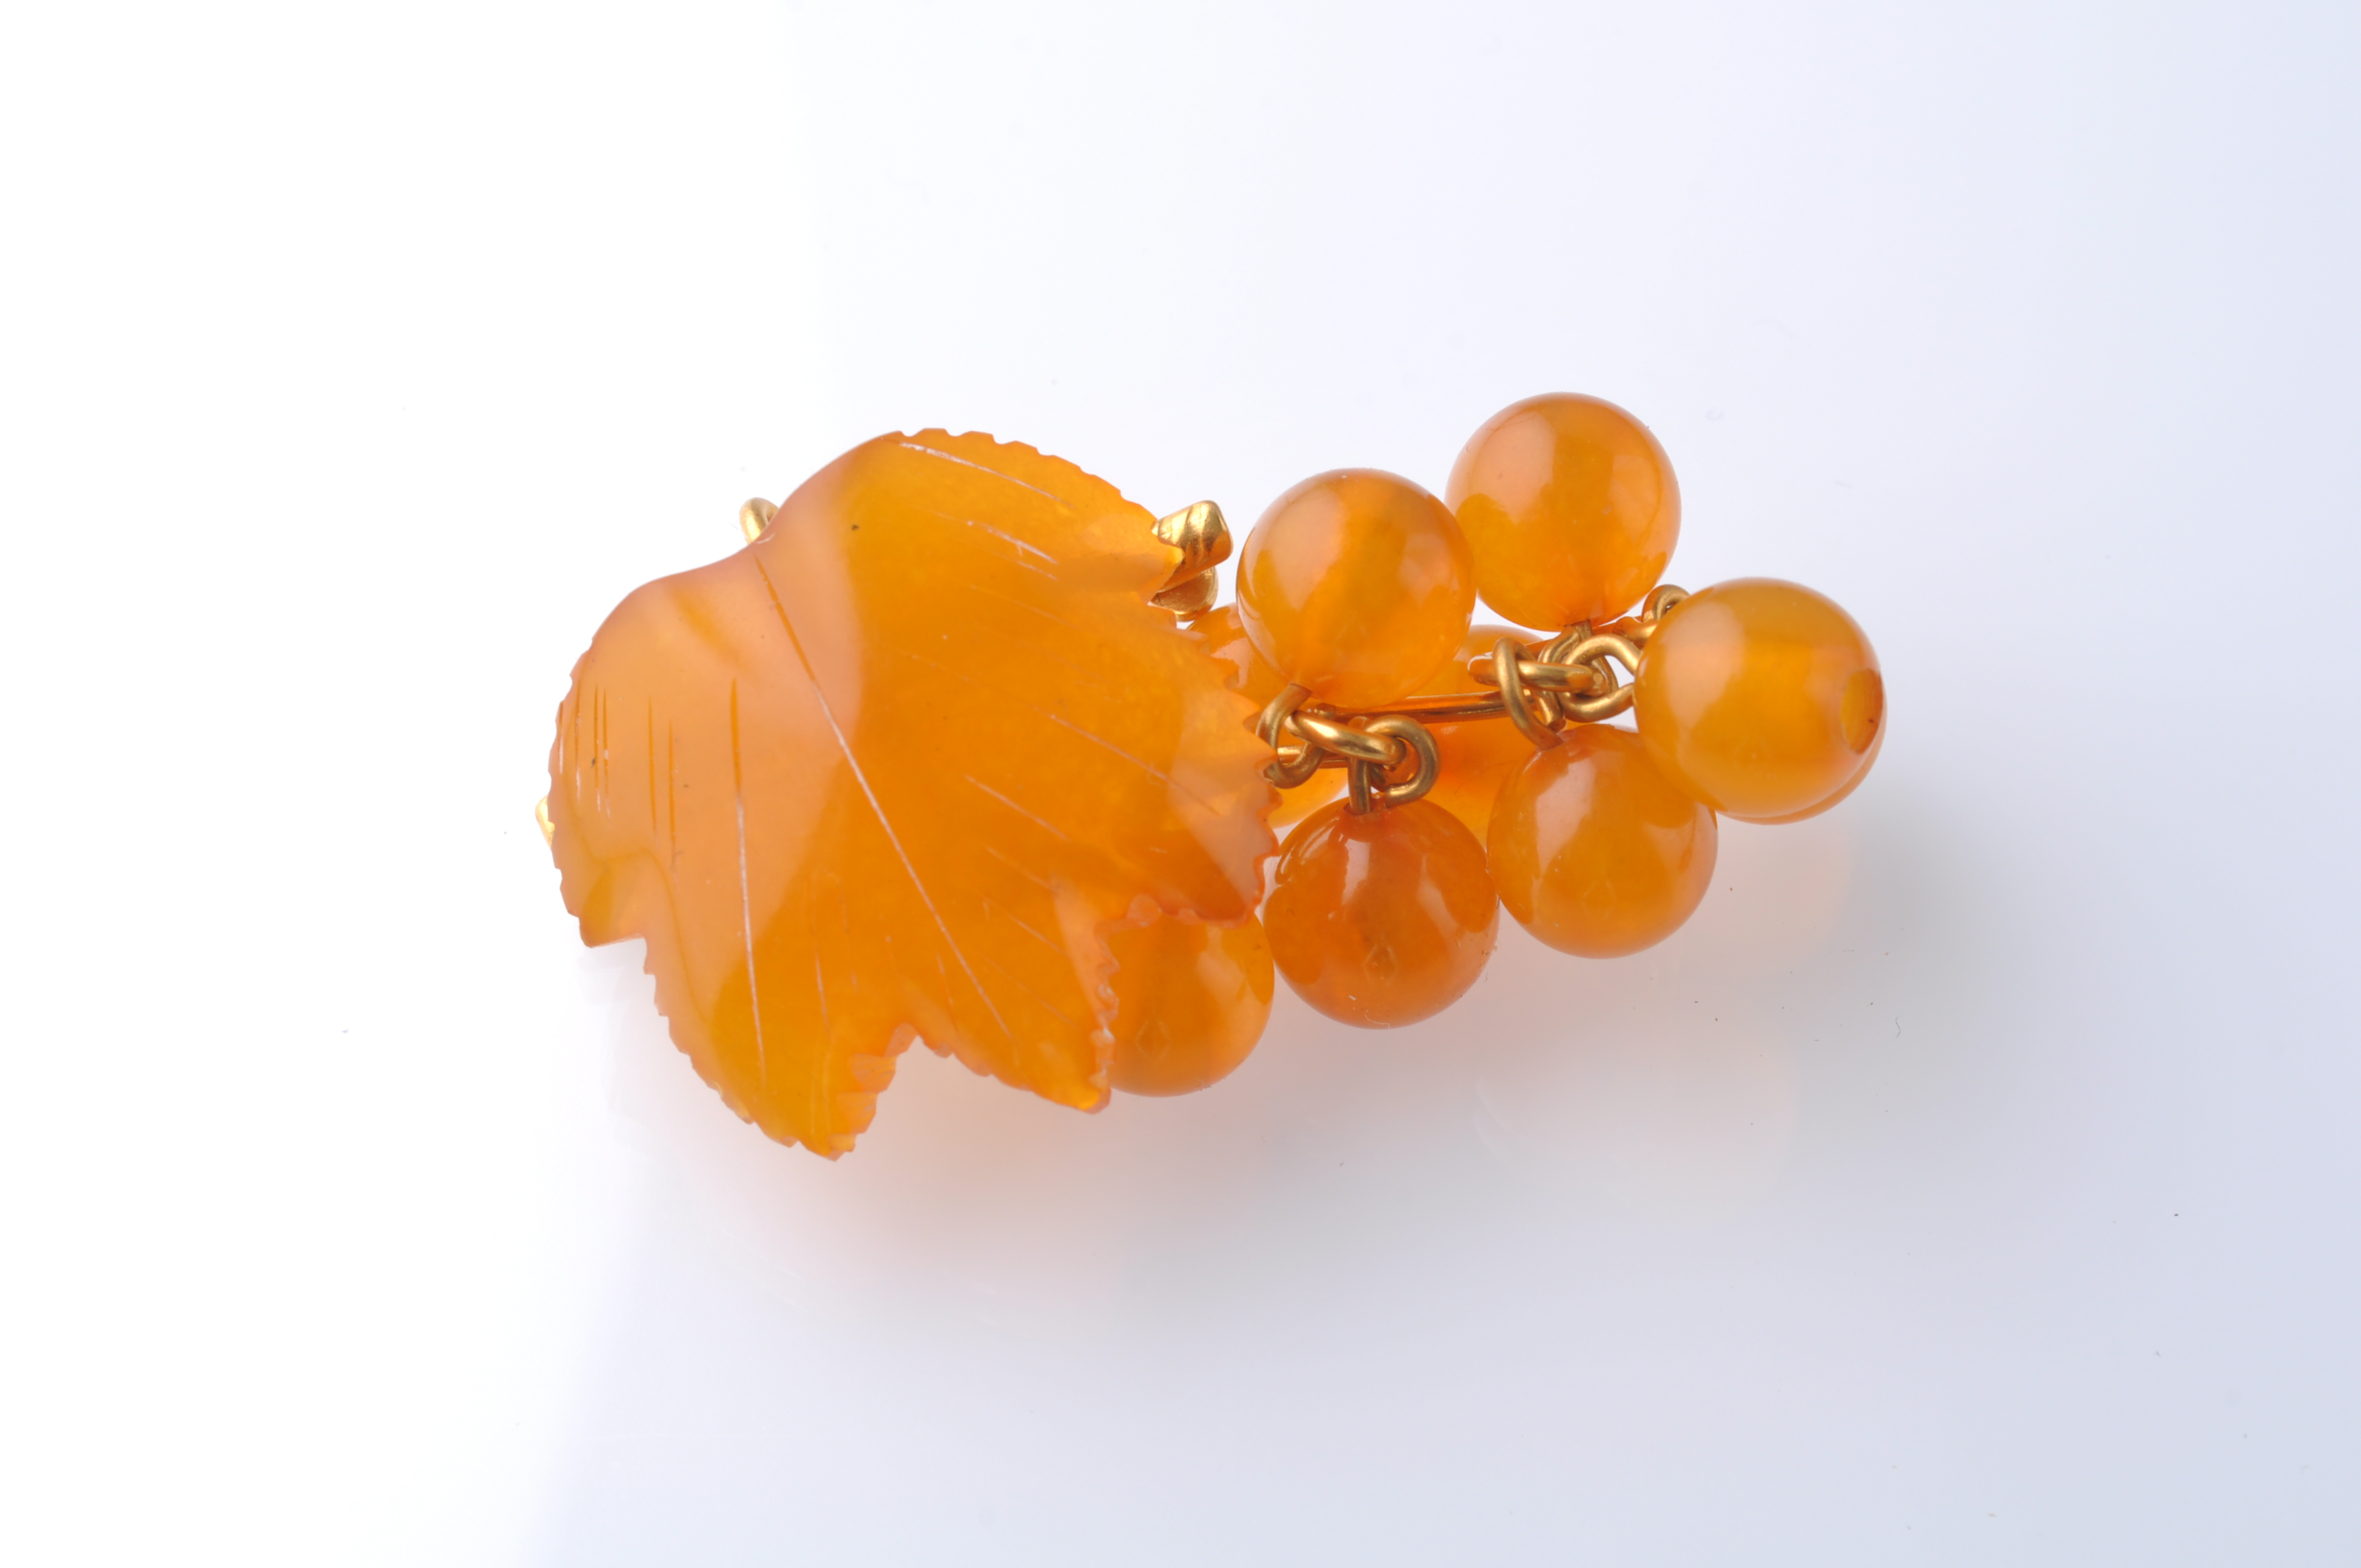 A COLLECTION OF SILVER GOLD AND AMBER JEWELLERY - Image 2 of 4